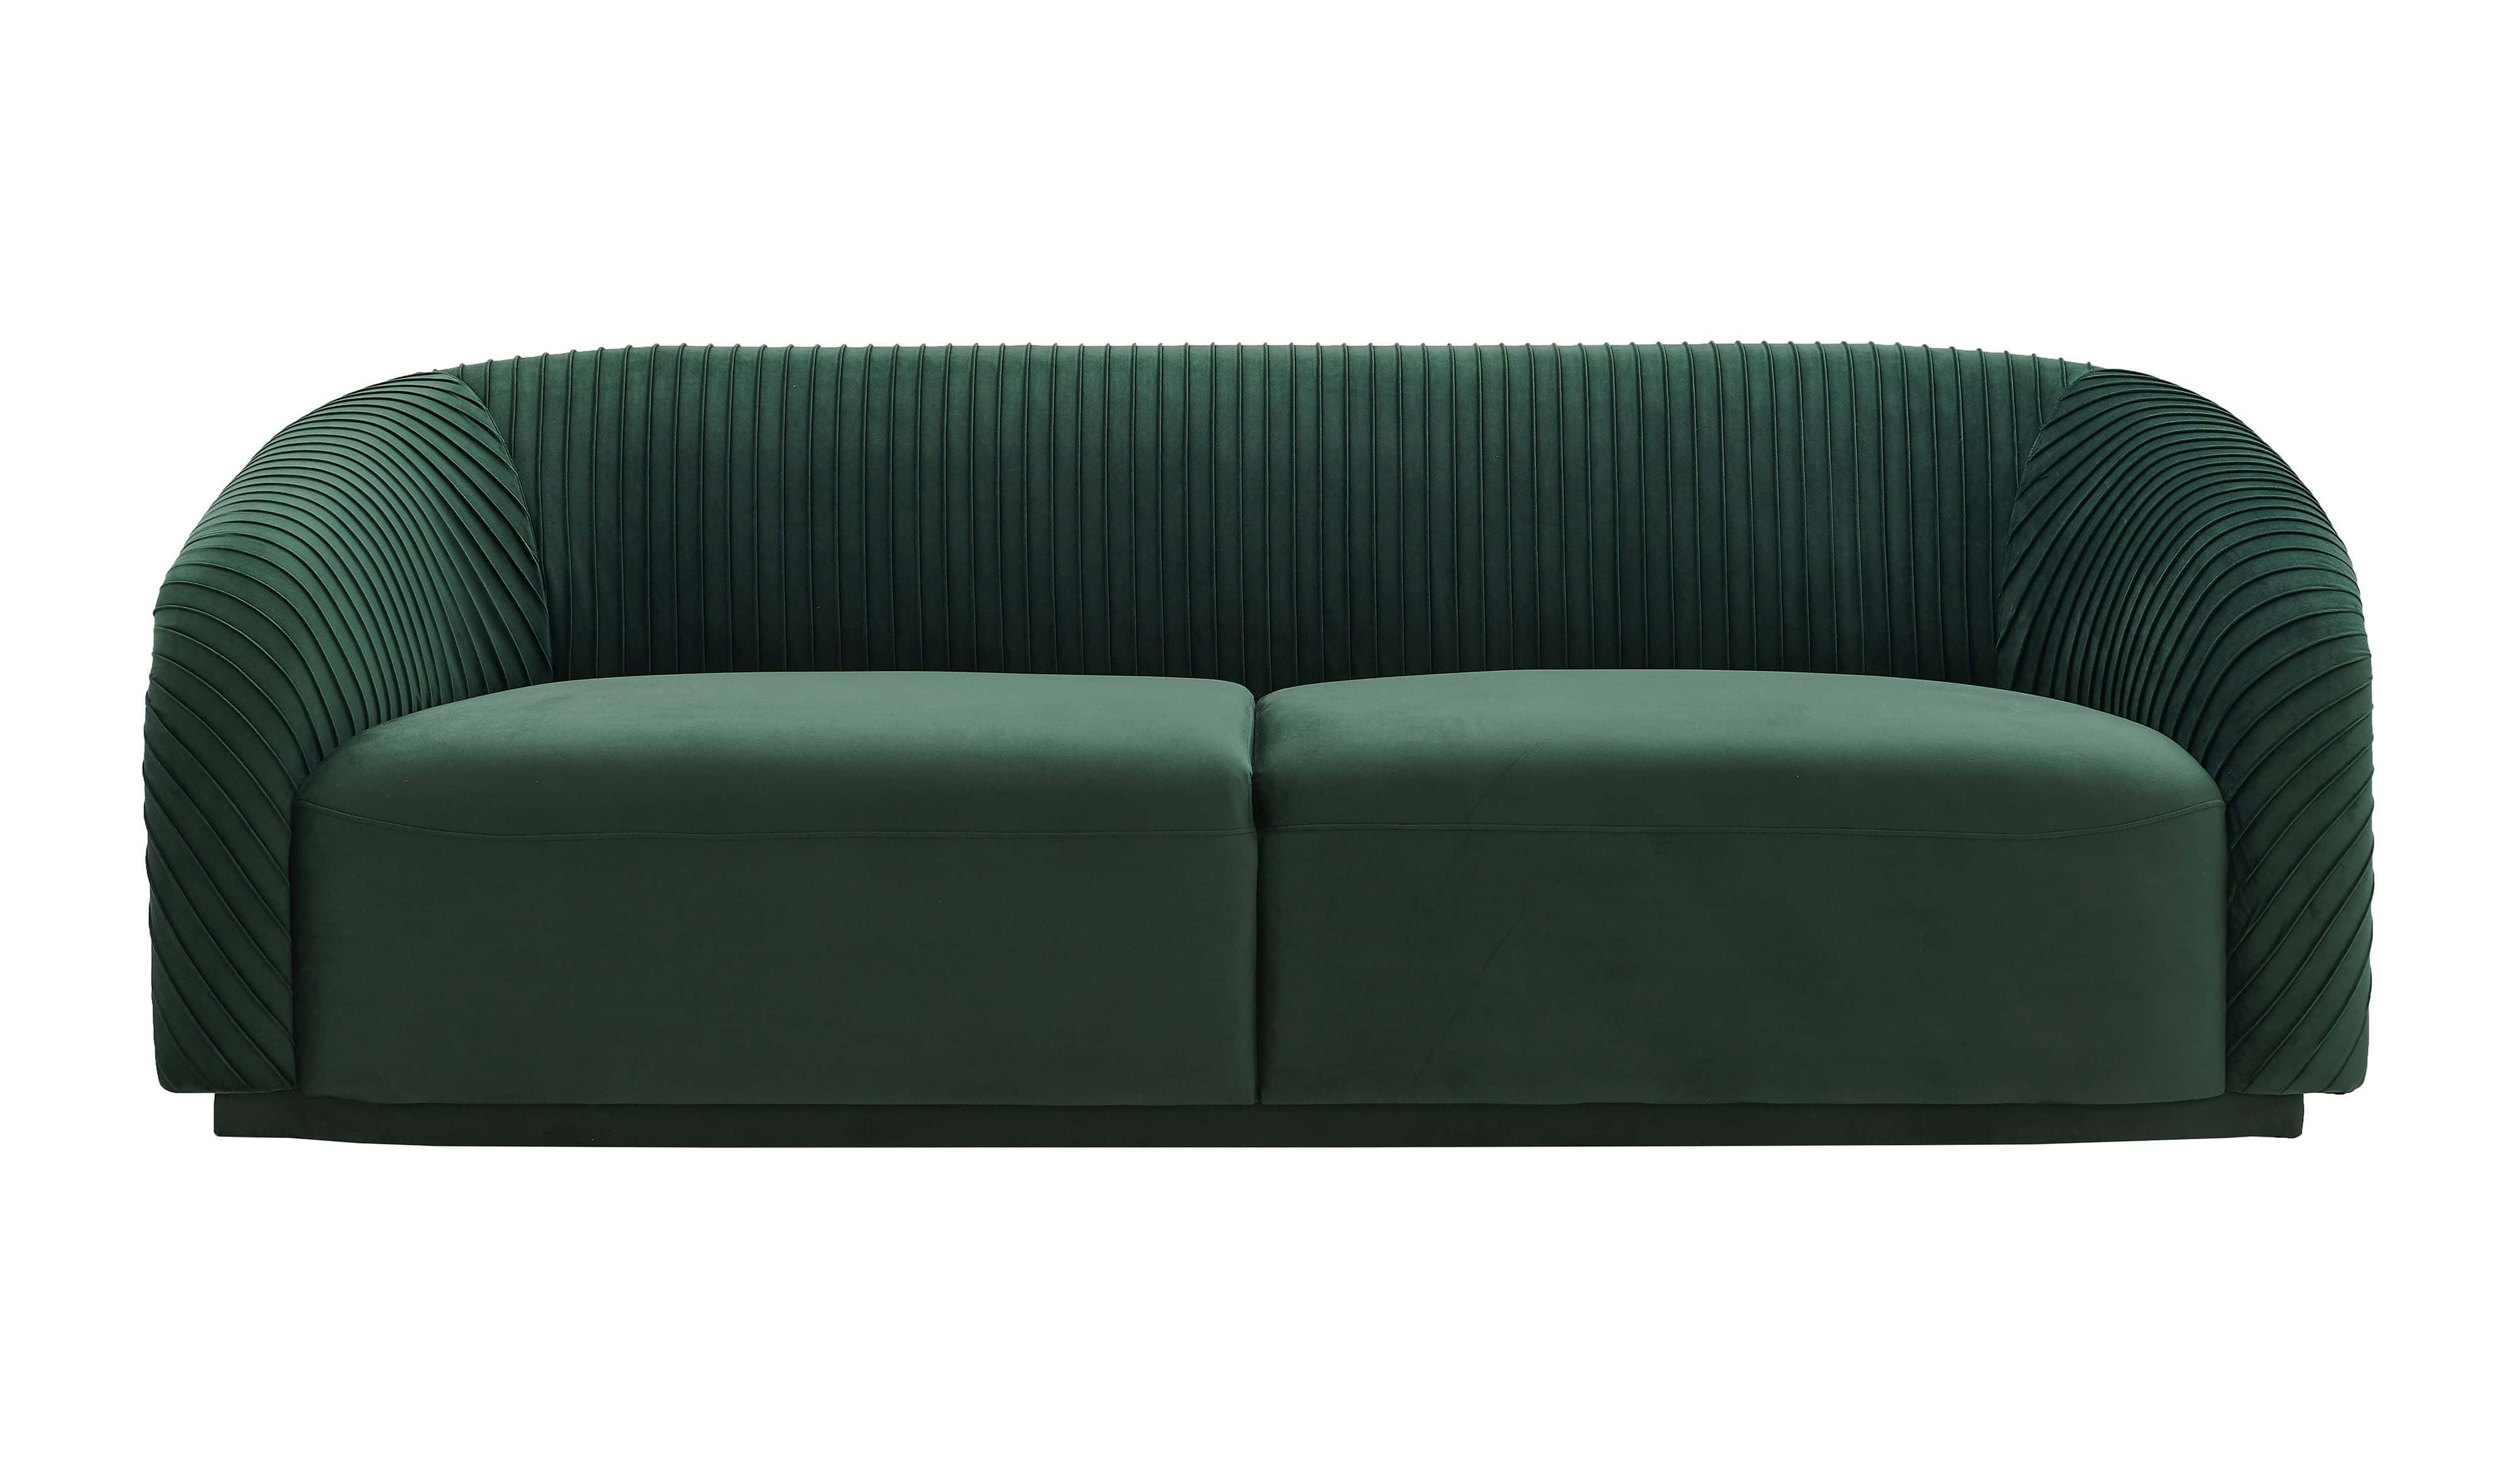 Yara Pleated Forest Green Velvet Sofa By Tov Furniture